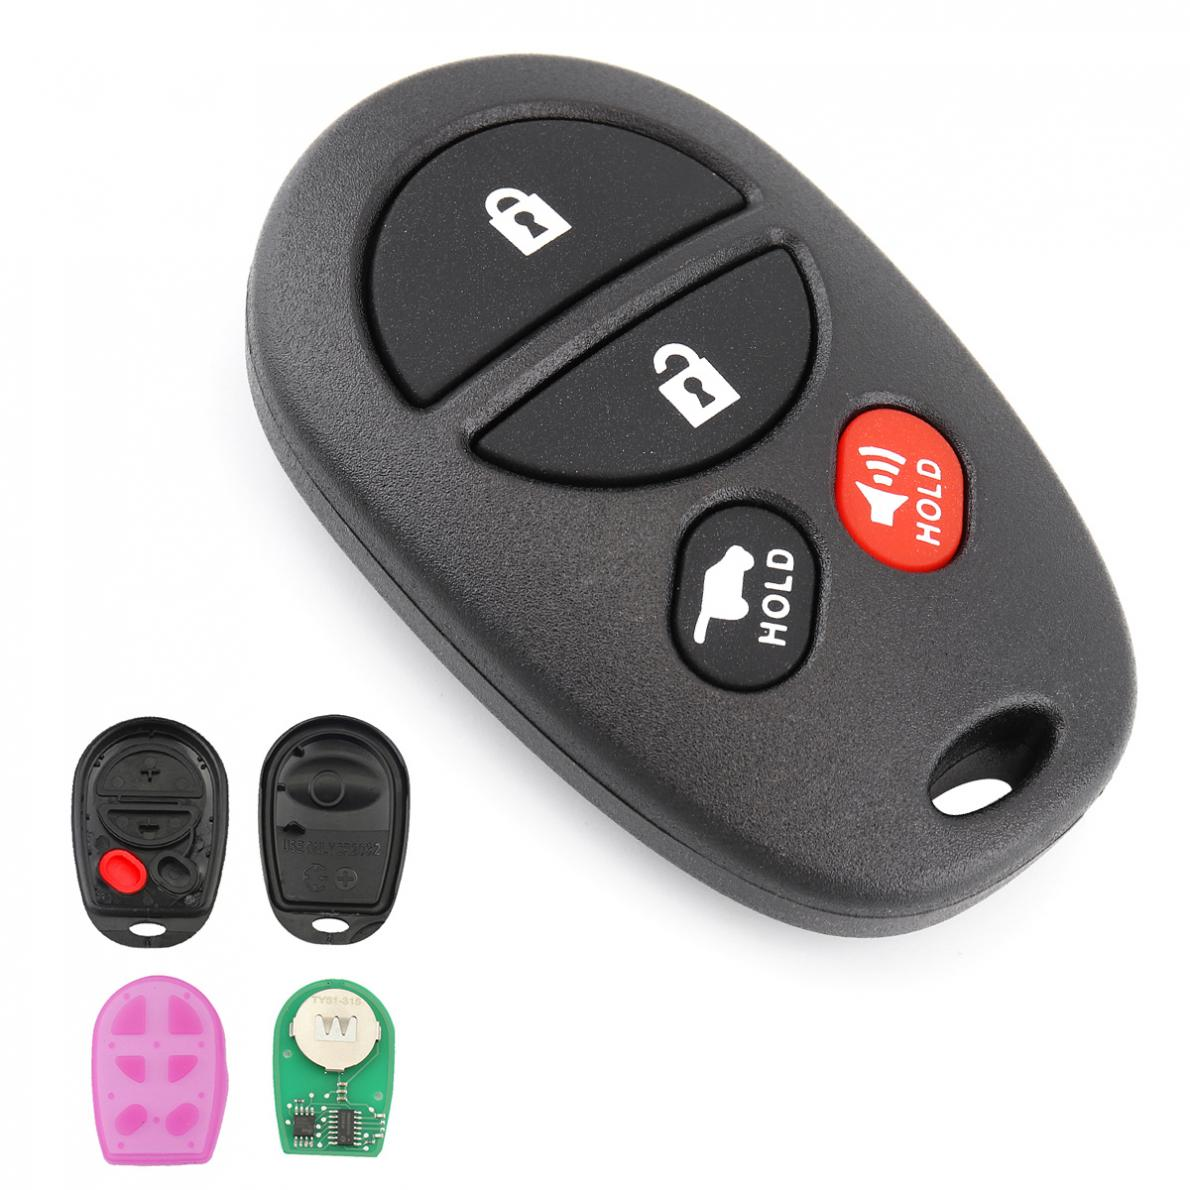 Key Fob Replacement >> Us 4 87 39 Off 315mhz 4 Buttons Keyless Entry Remote Car Key Fob Replacement For Toyota Sienna Avalon Solara Sequoia Highlander 2004 2016 In Car Key